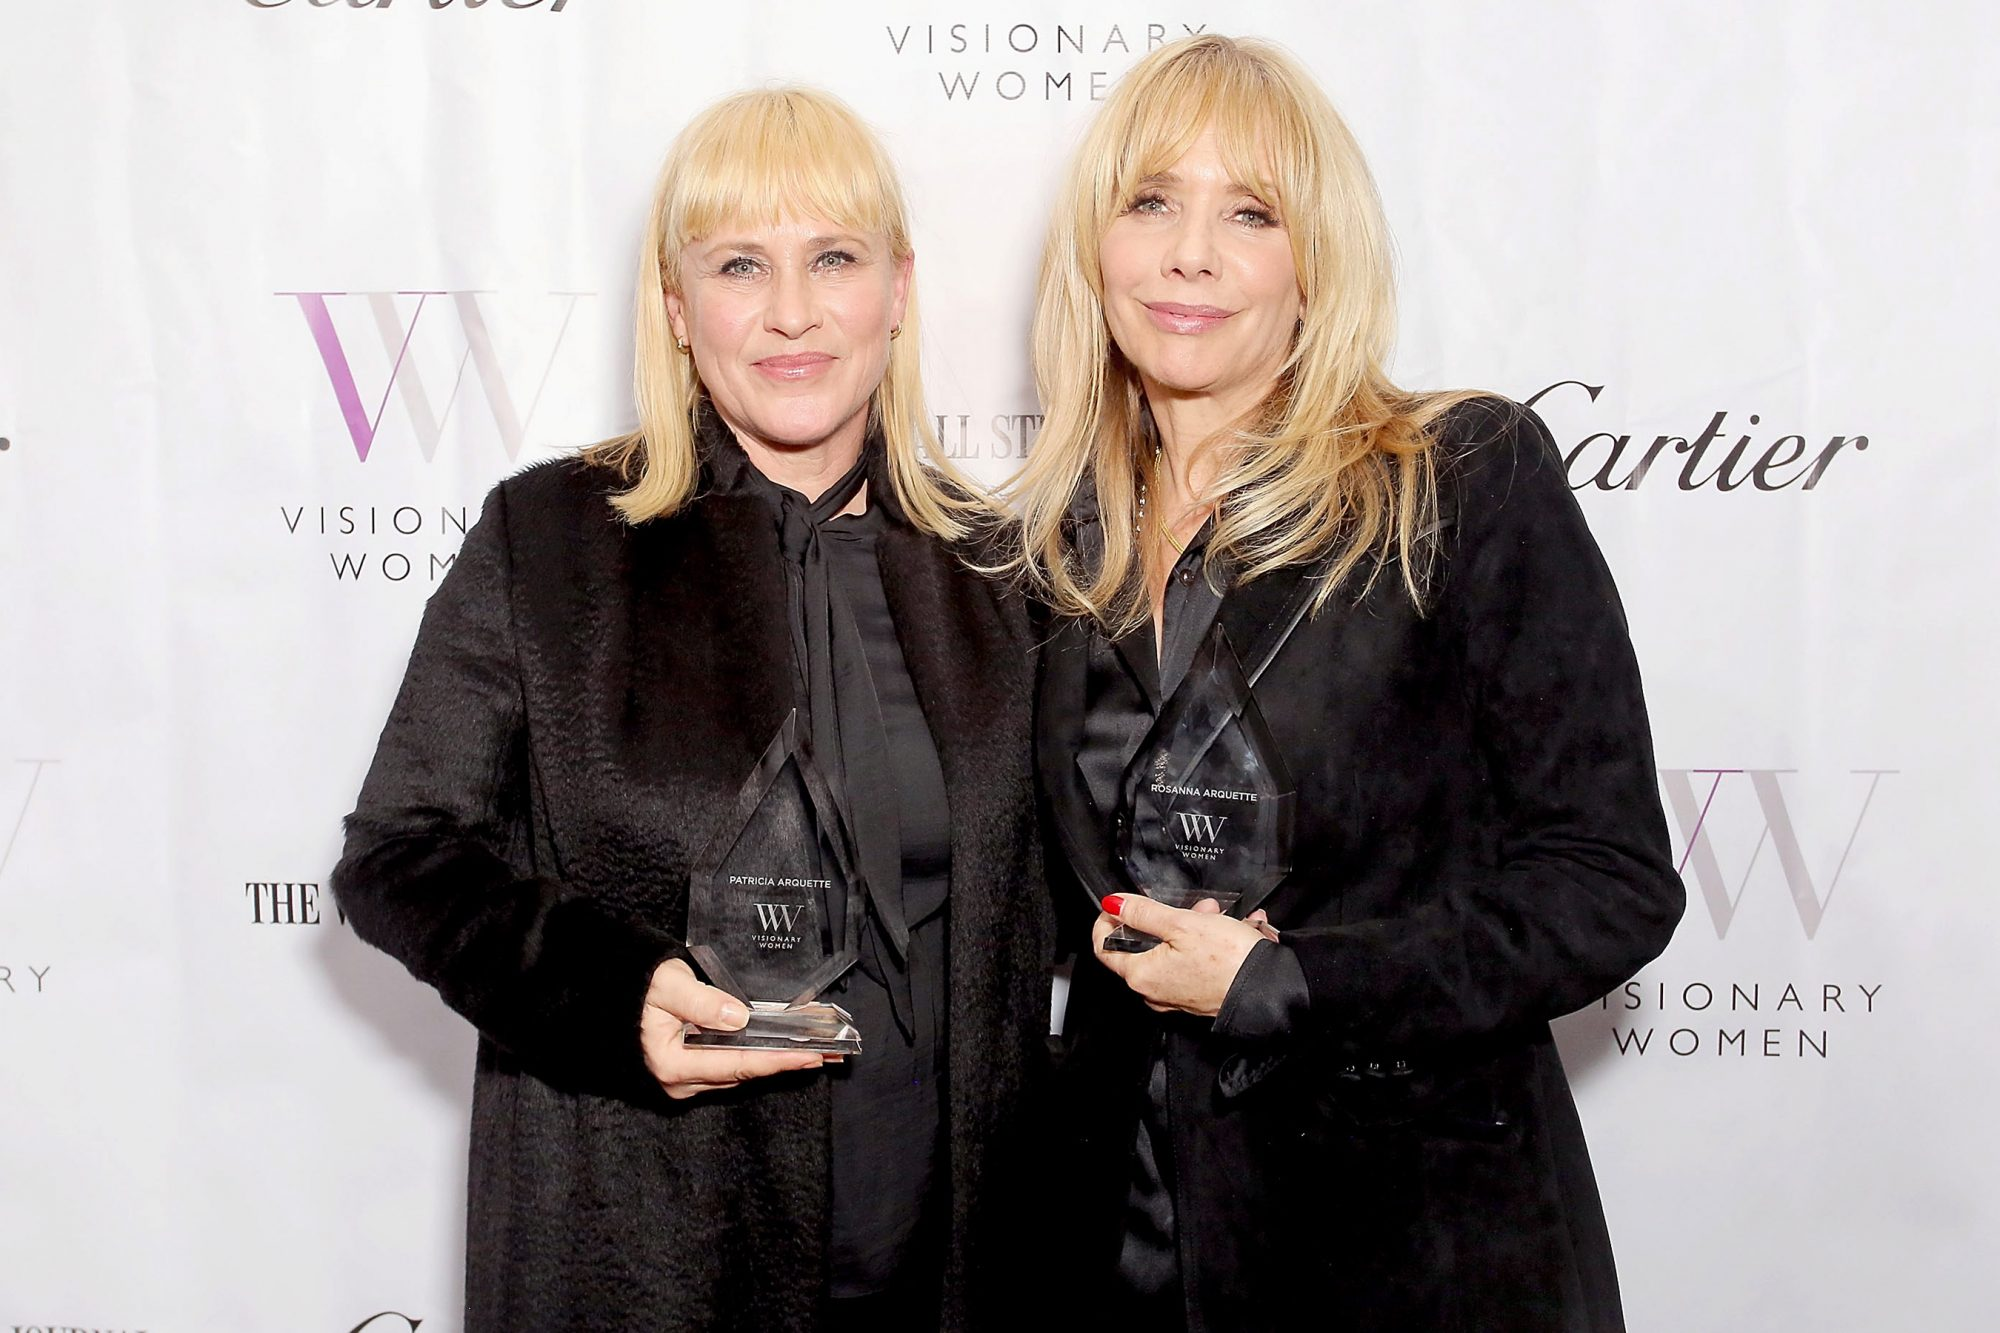 StarTracks - 3/8Visionary Women's International Women's Day Honoring Patricia and Rosanna Arquette